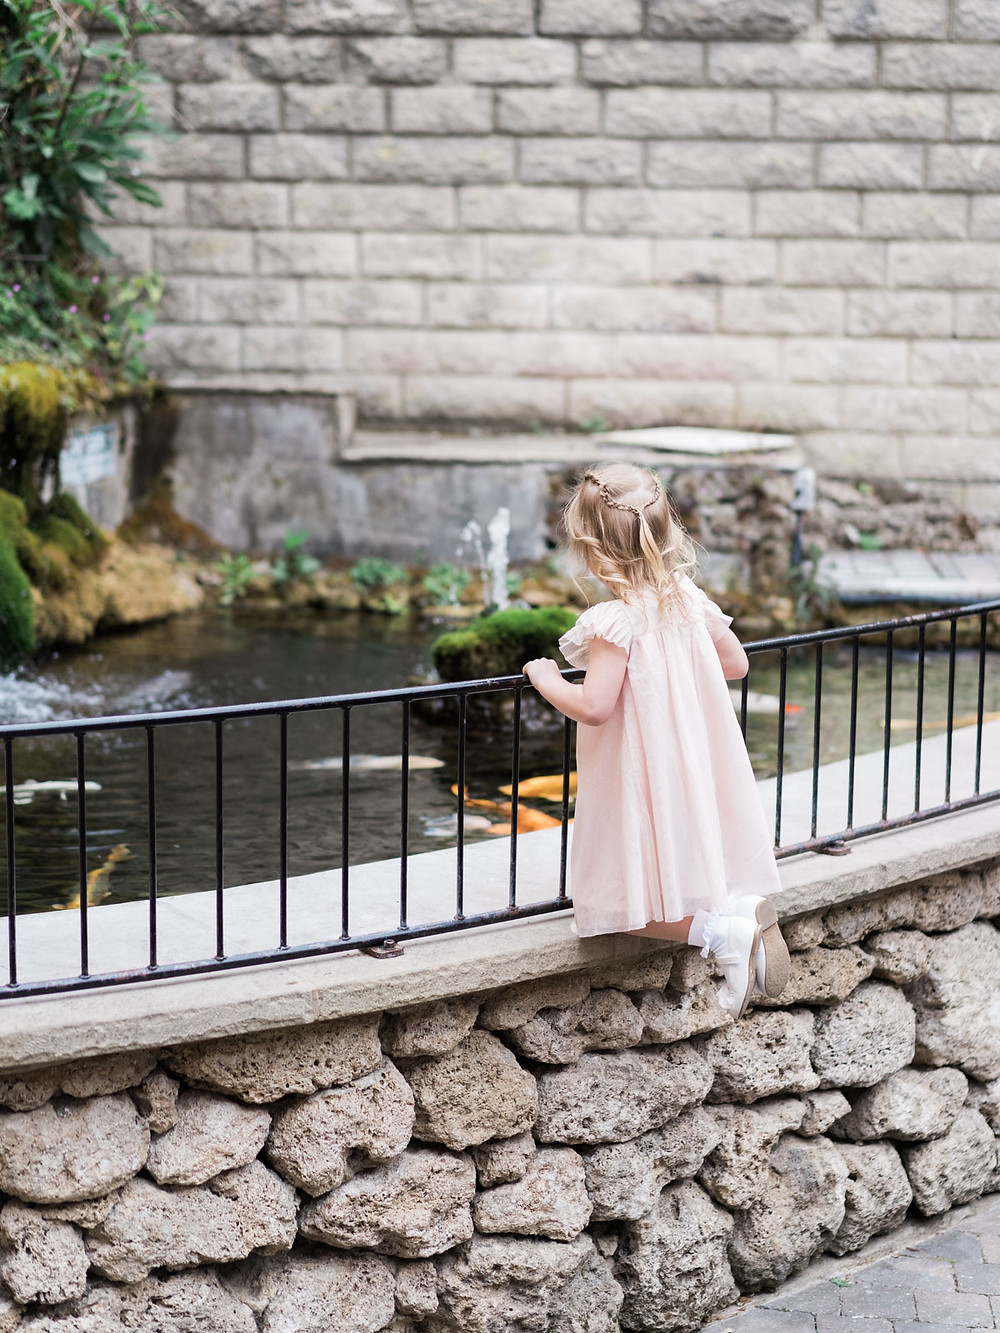 Wedding flower girl checking out the wedding venue fishpond in Matlock.